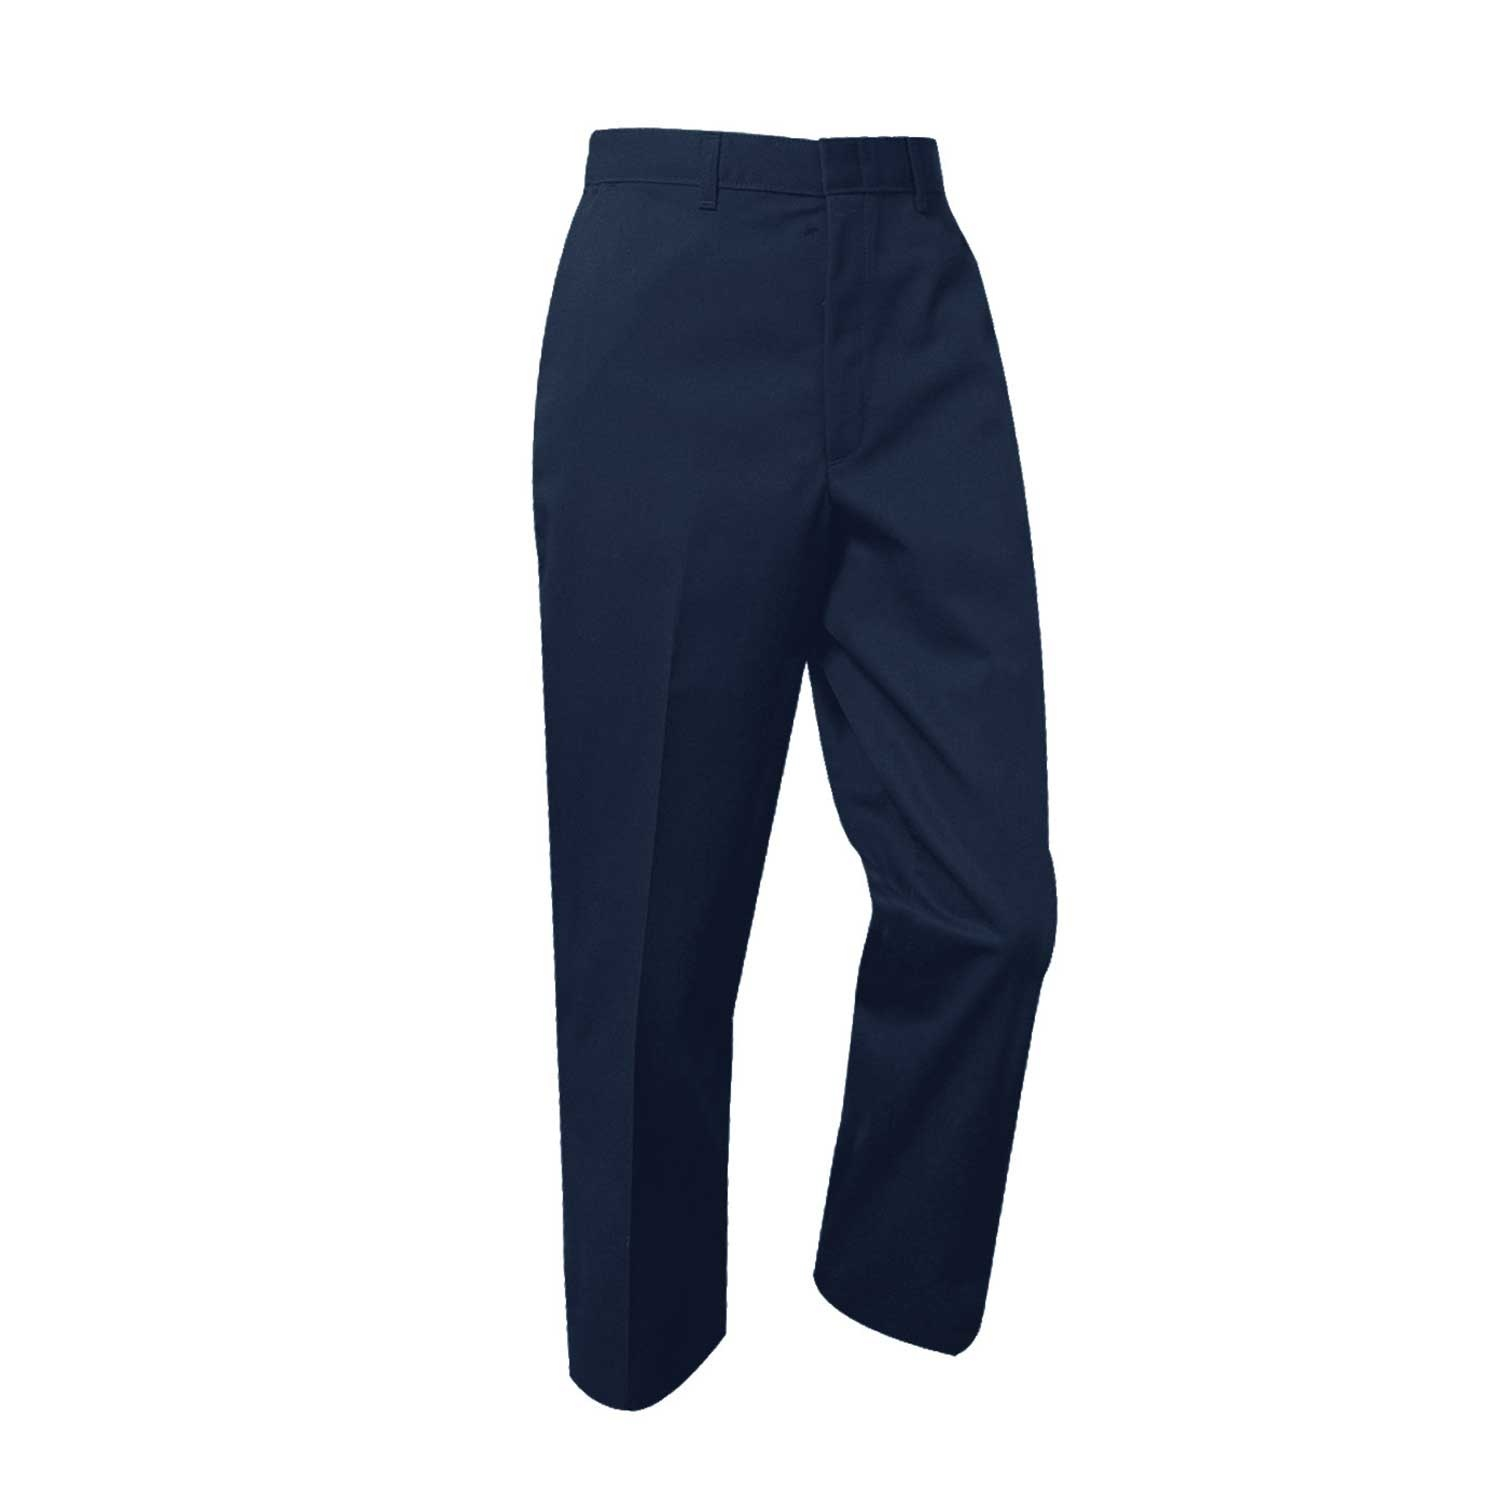 Boys Regular Flat Front w/ Adjustable Waistband Pant (7750R) Navy